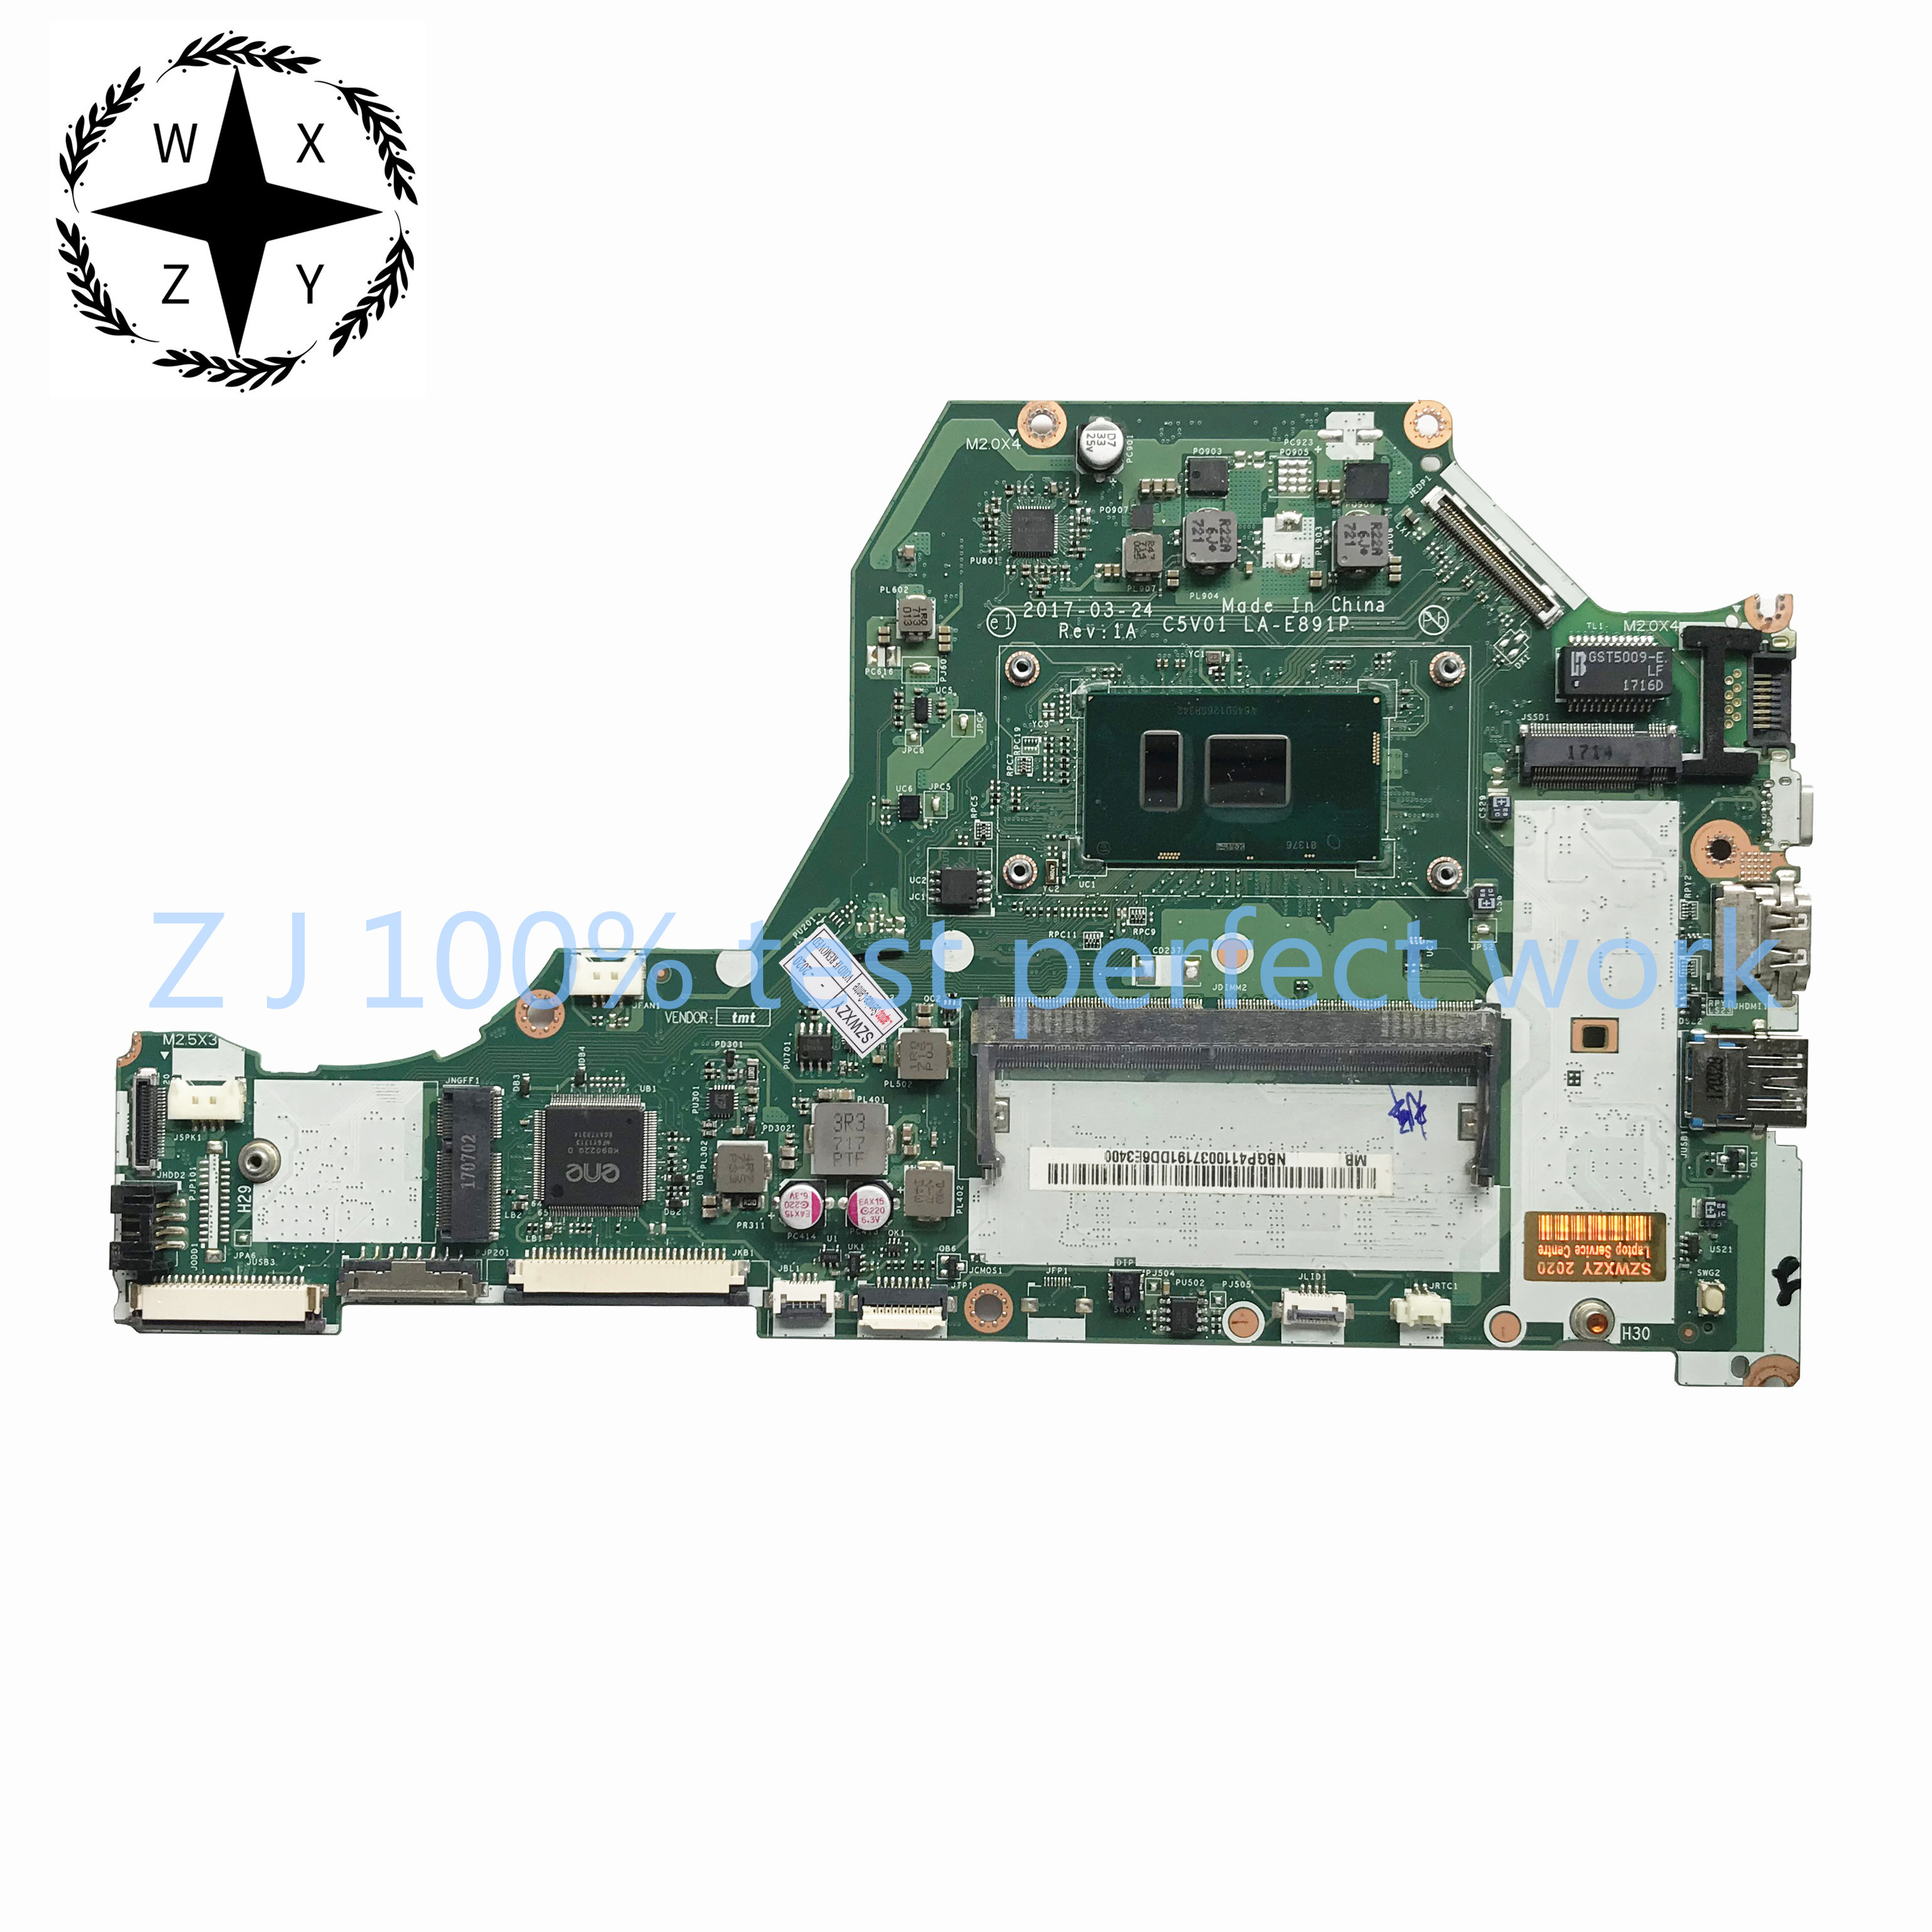 For Acer Aspire A515 A515 51 Laptop Motherboard W I5 7200u Cpu Ddr4 Nb Gp411 003 Nbgp411003 C5v01 La E891p 100 Tested Fast Ship Laptop Motherboard Aliexpress